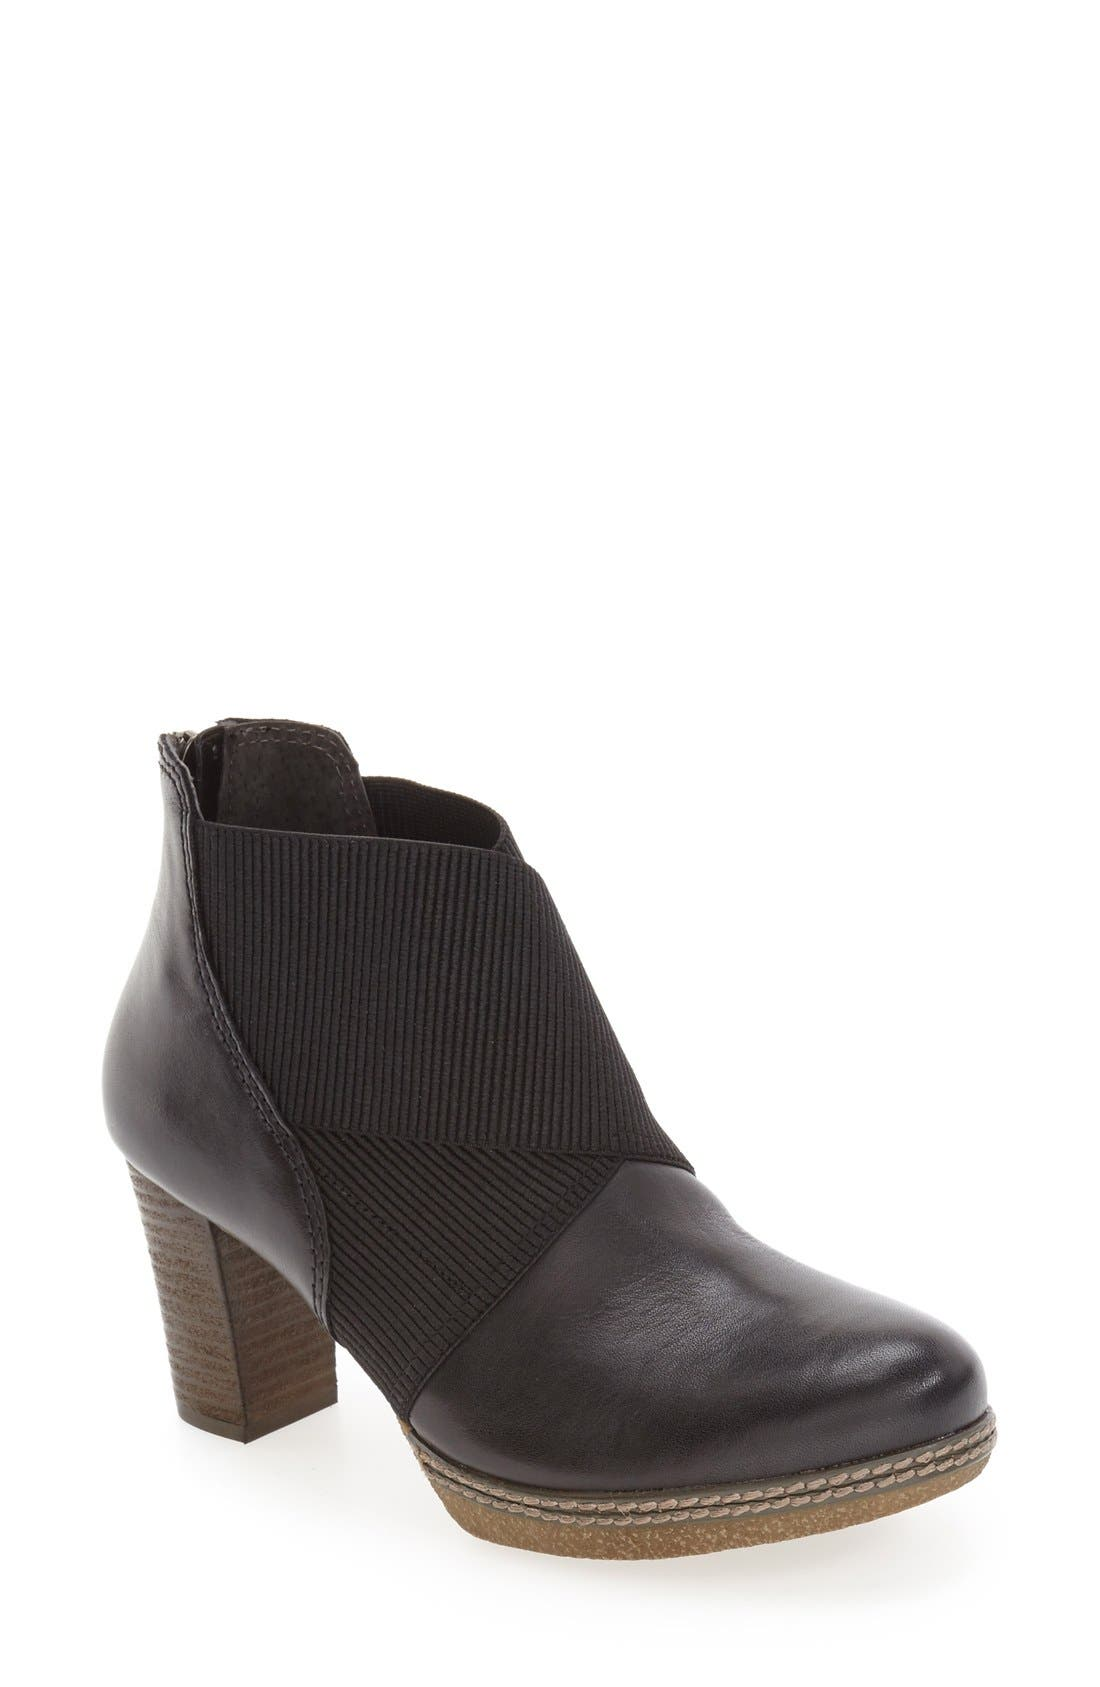 Alternate Image 1 Selected - Gabor Block Heel Bootie (Women)